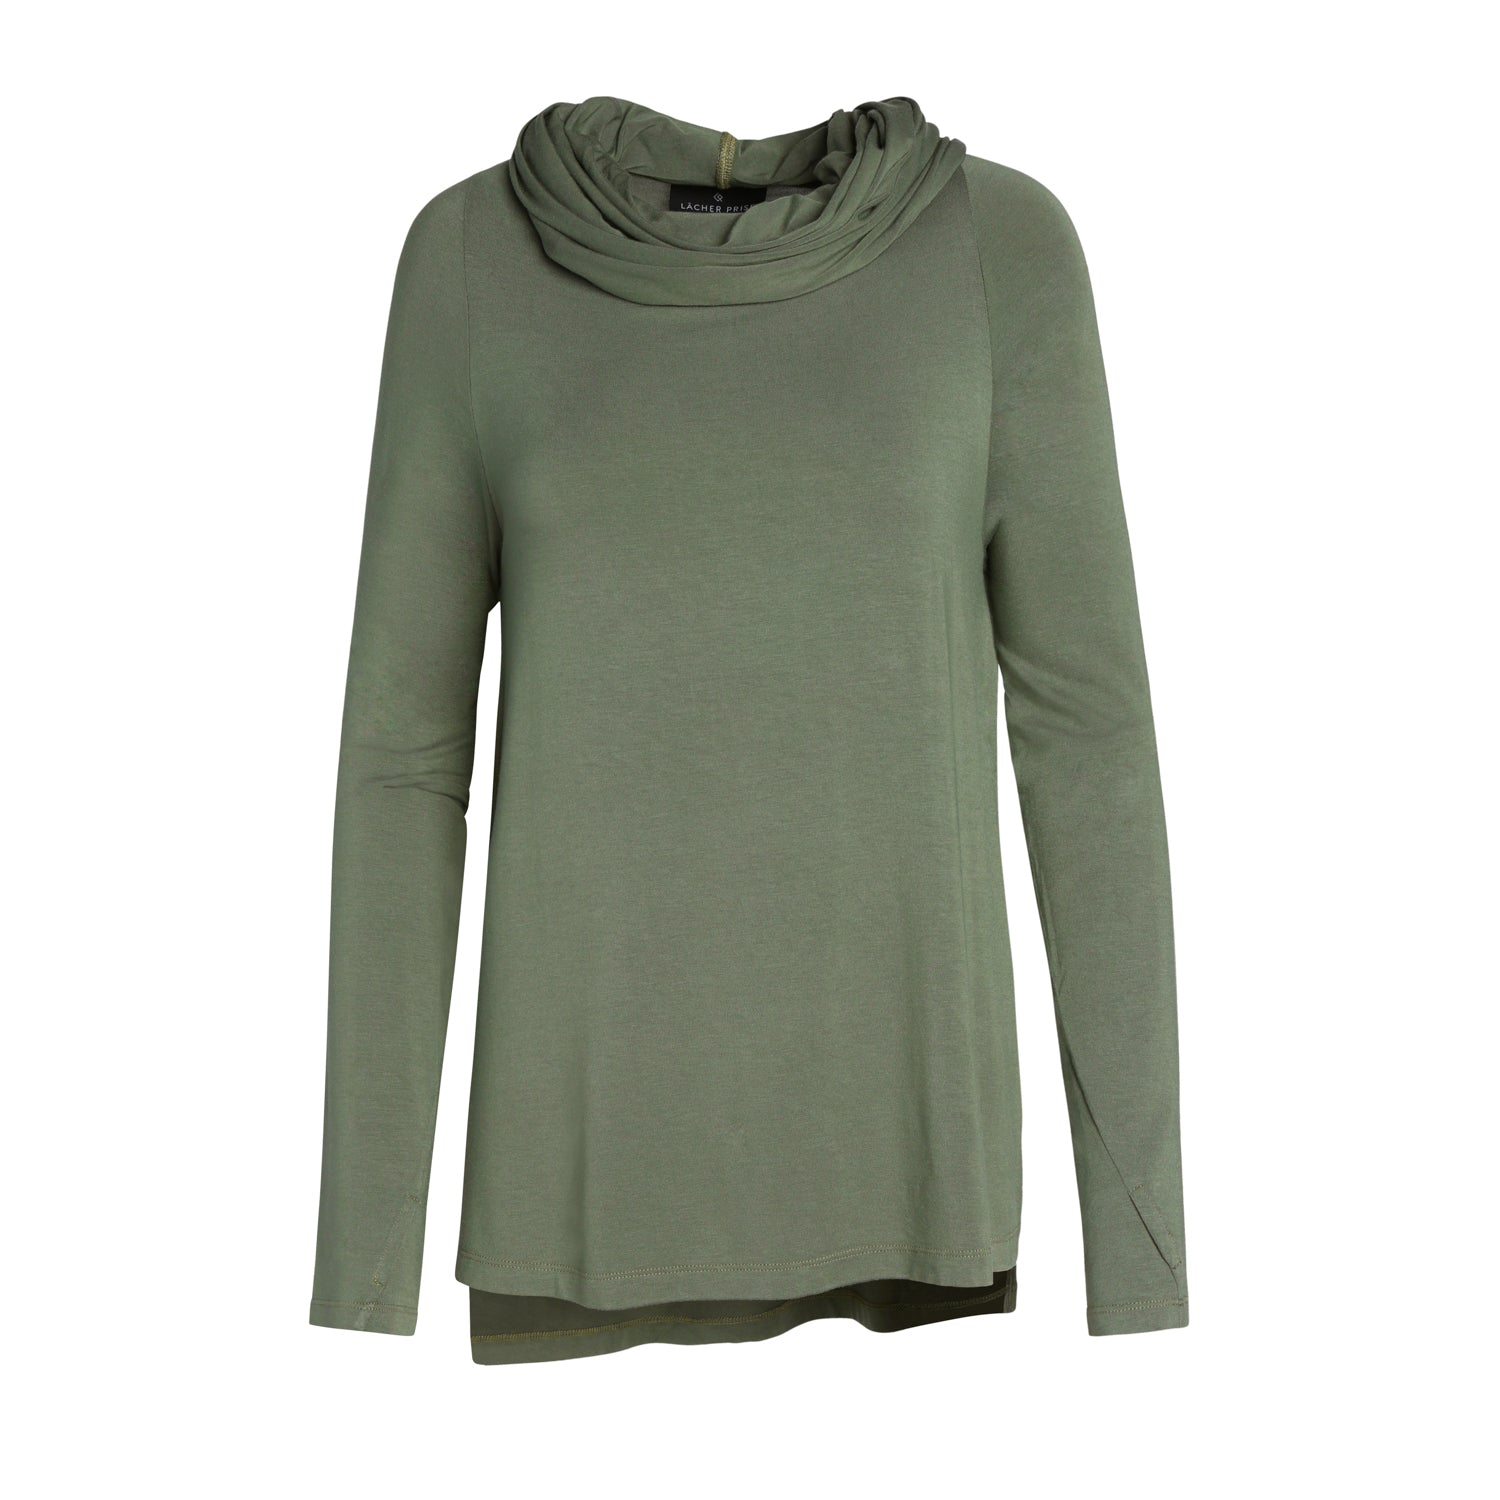 Echape Long Sleeve - Olive Green